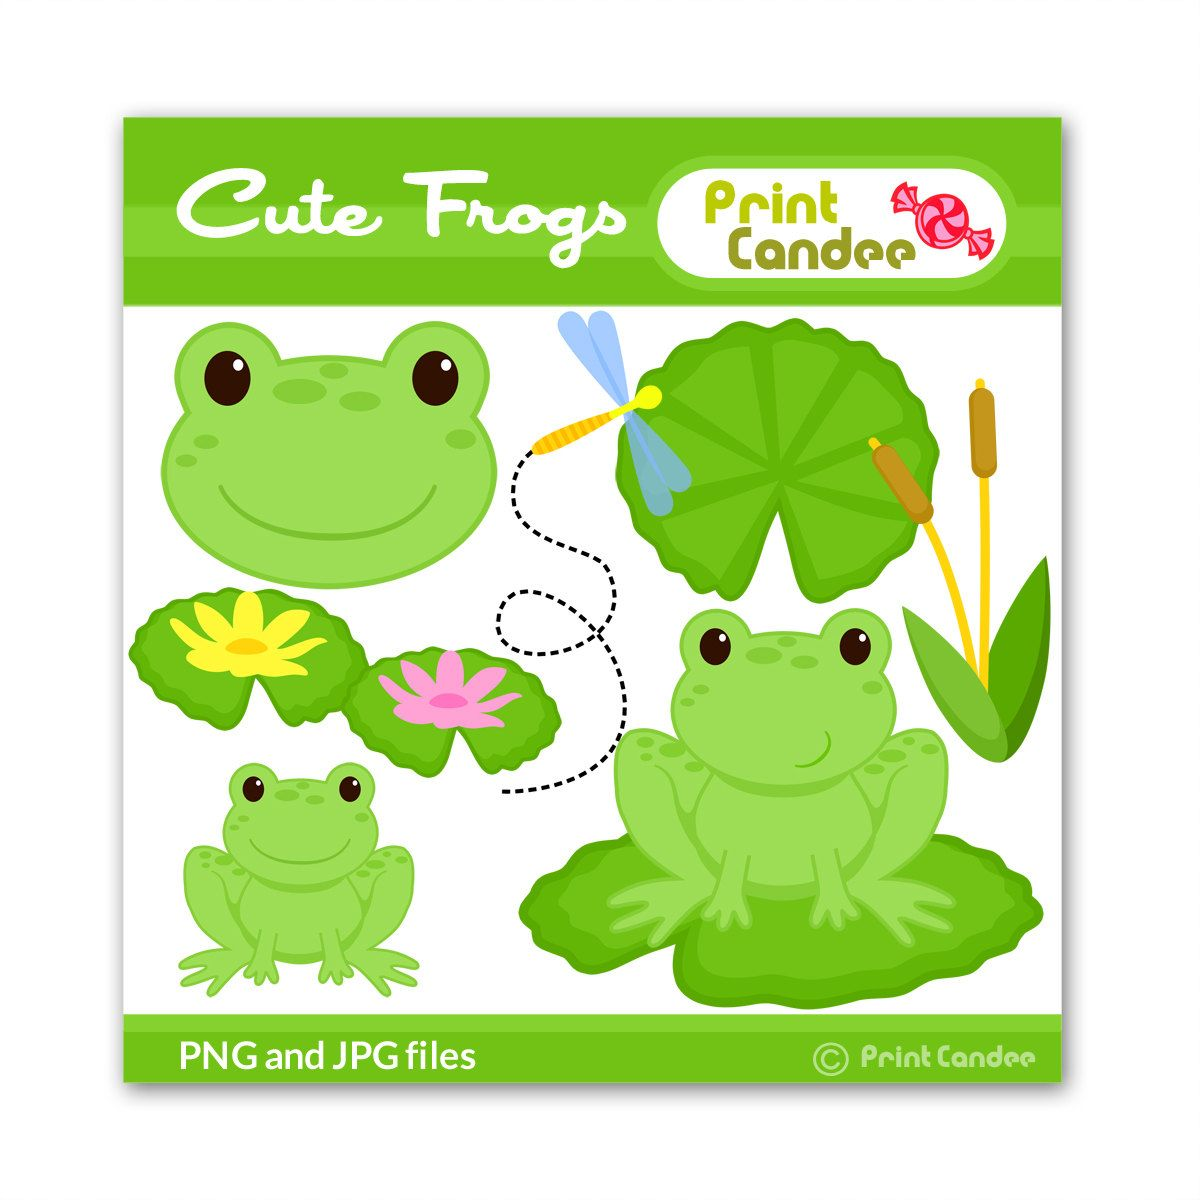 5 Green & Speckled Frogs Activity Ideas | Frog activities, Frogs and ...